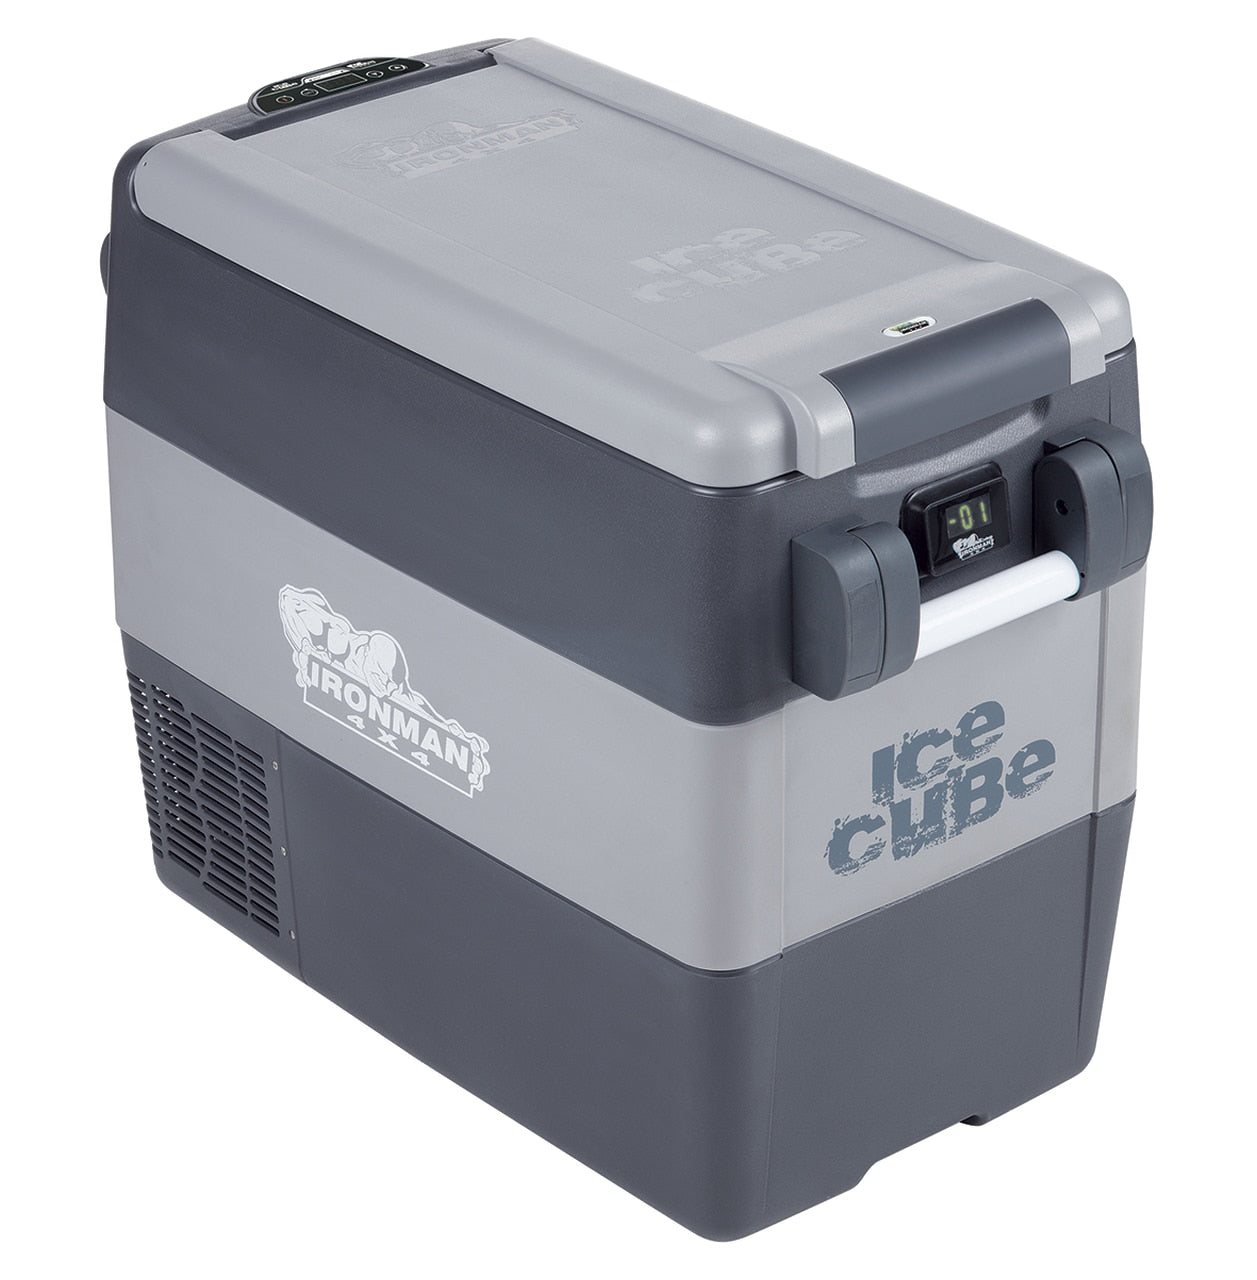 ICE CUBE FRIDGE/FREEZER 50L (52 QUARTS) - 4x4 Runners